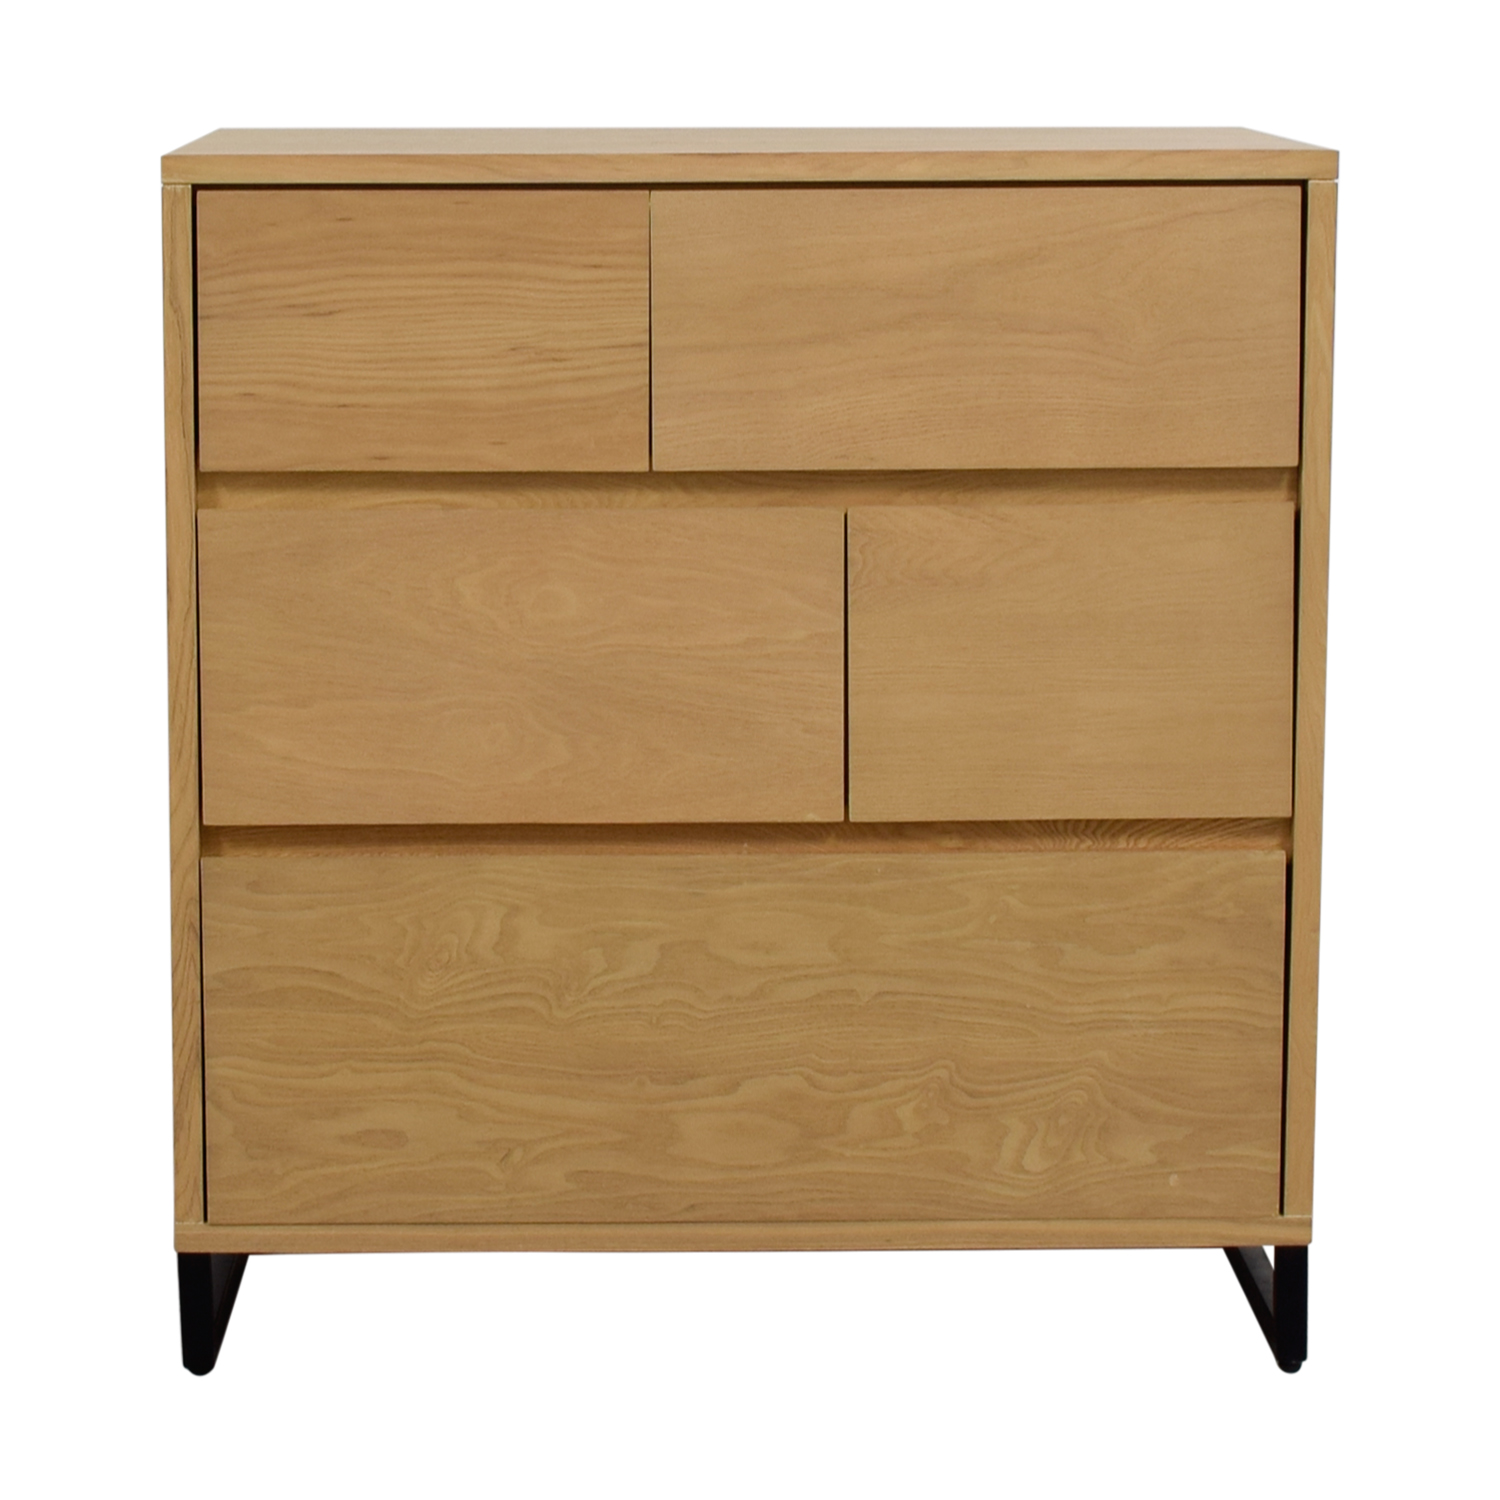 West Elm West Elm Hudson Five-Drawer Dresser price